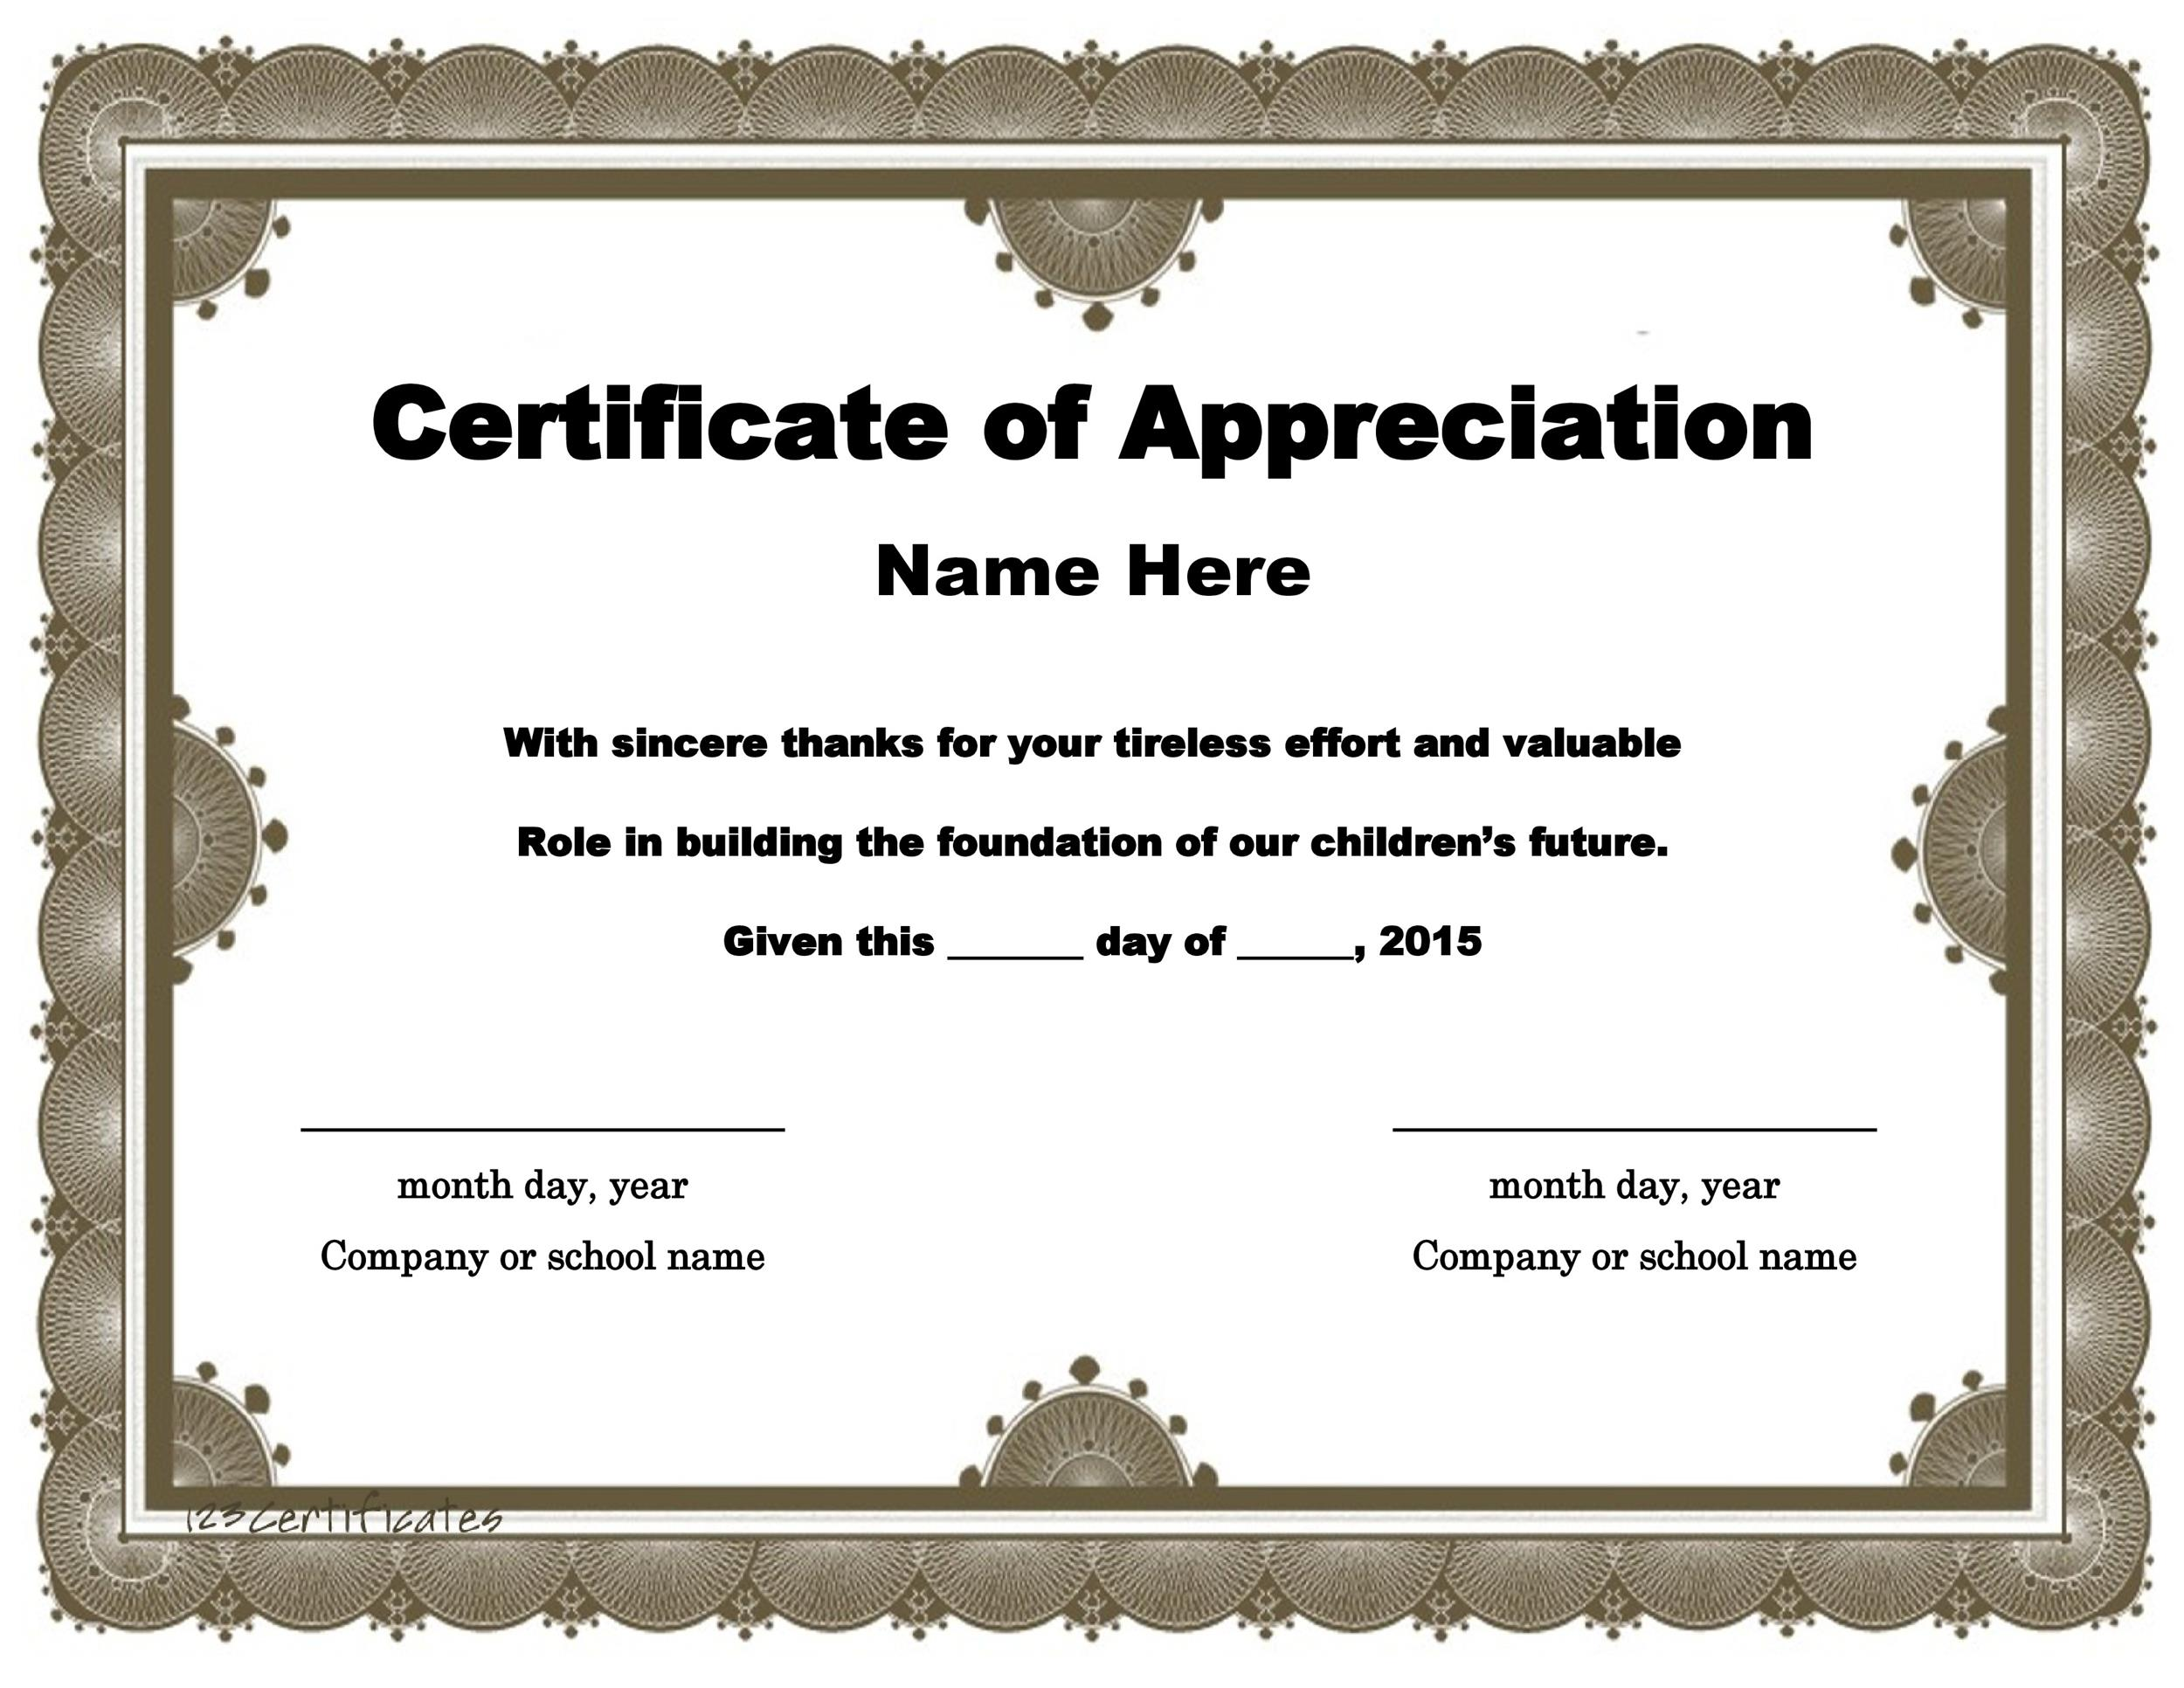 30 Free Certificate of Appreciation Templates and Letters – Examples of Award Certificates